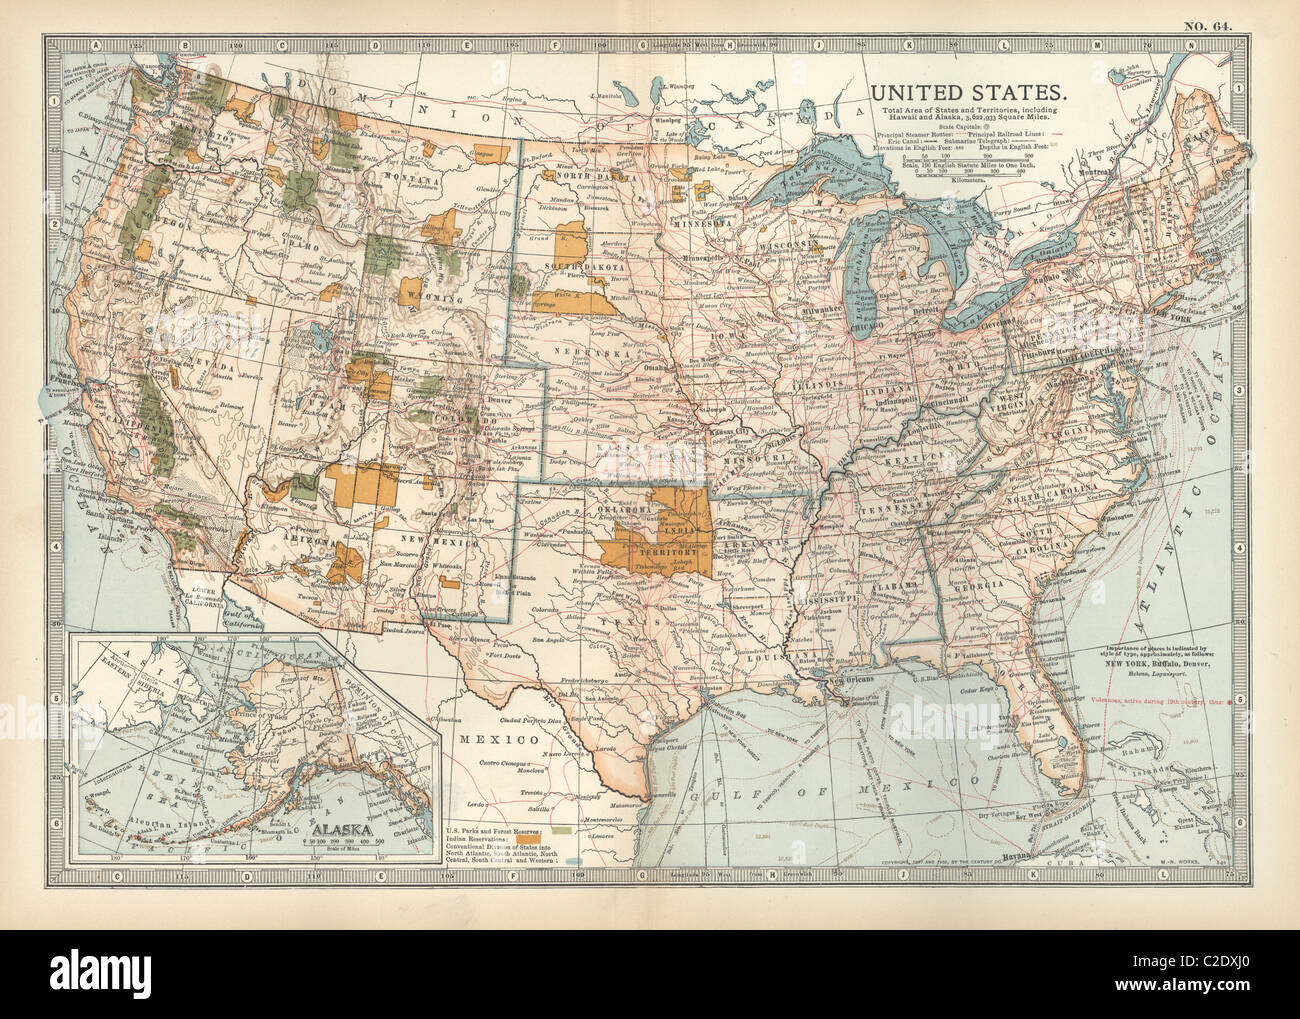 Map of the United States with inset of Alaska Stock Photo: 35956312 Inset Map Of The United States on inset map of hungary, inset map of england, inset map of cuba, icon map of the united states, inset map of switzerland, map scale of the united states, resources map of the united states, inset map of brazil, inset map of georgia, lake map of the united states, red map of the united states, inset map of greece, map of the dioceses of the united states, map of england and united states, inset map of latin america, easy map of the united states, the big map of united states, travel map of the united states, inset map of the netherlands, basic map of the united states,